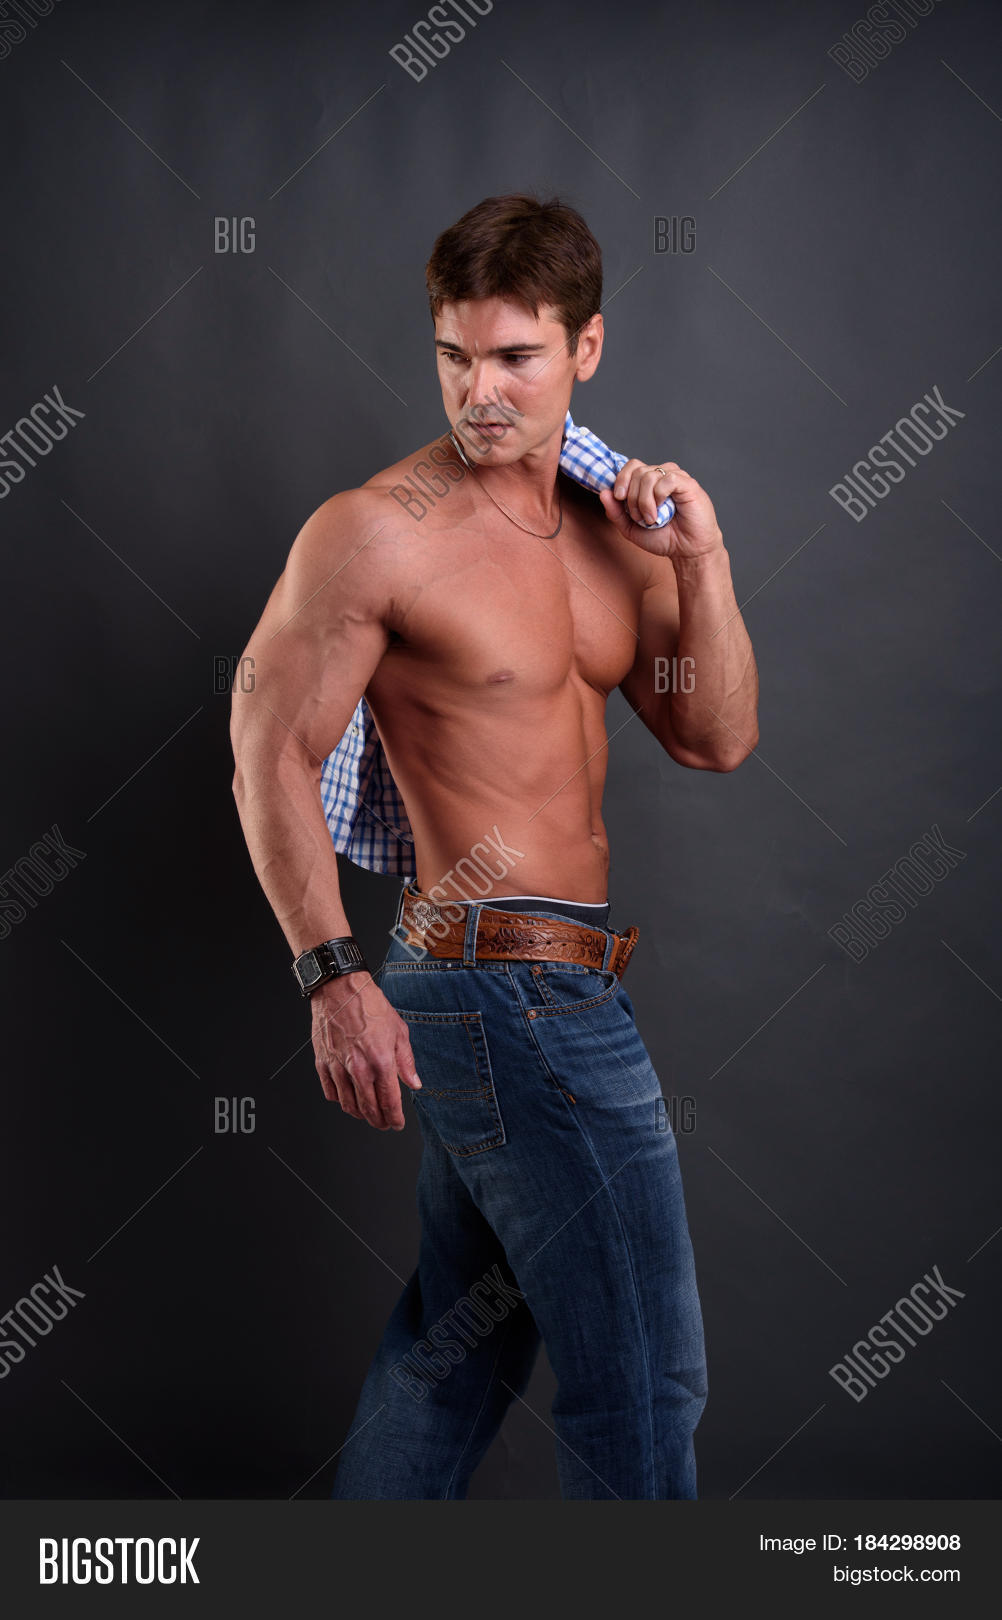 stock finder stud at home young man photo with examining wall